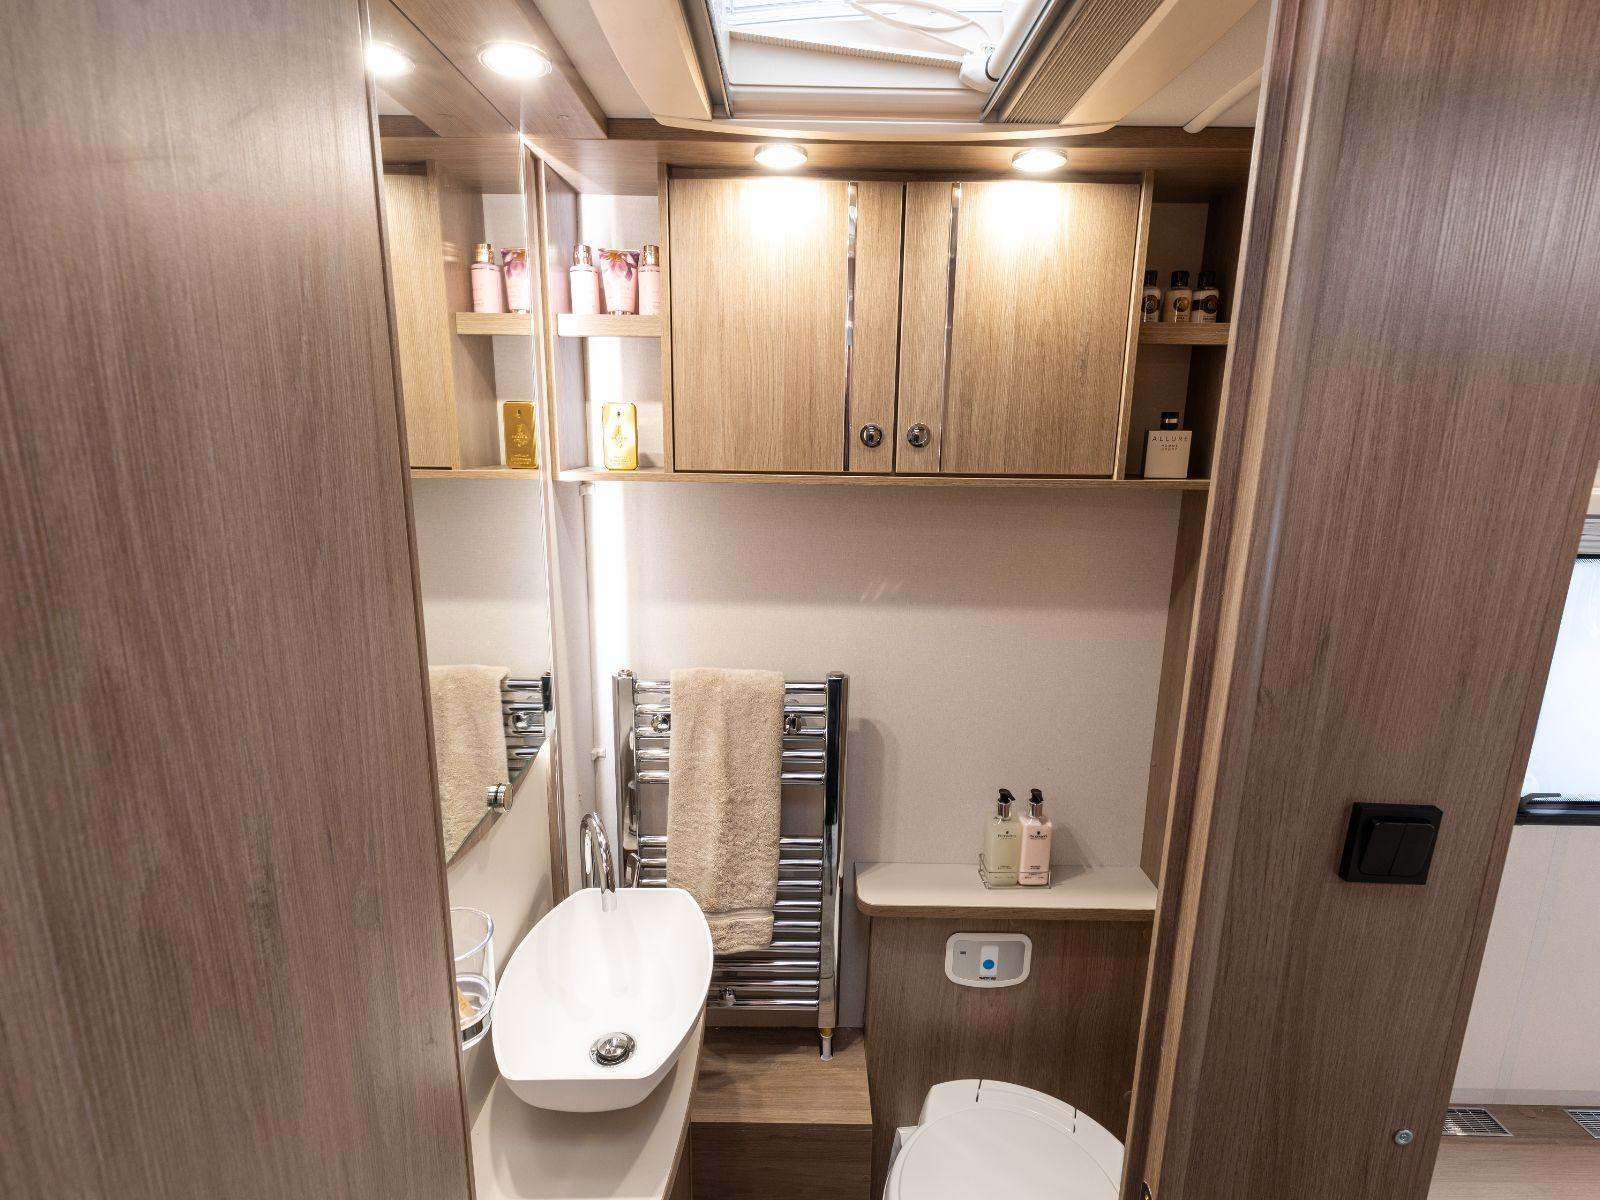 Bathroom layout with mirror, sink, heated towel rack, toilet and toiletry storage'